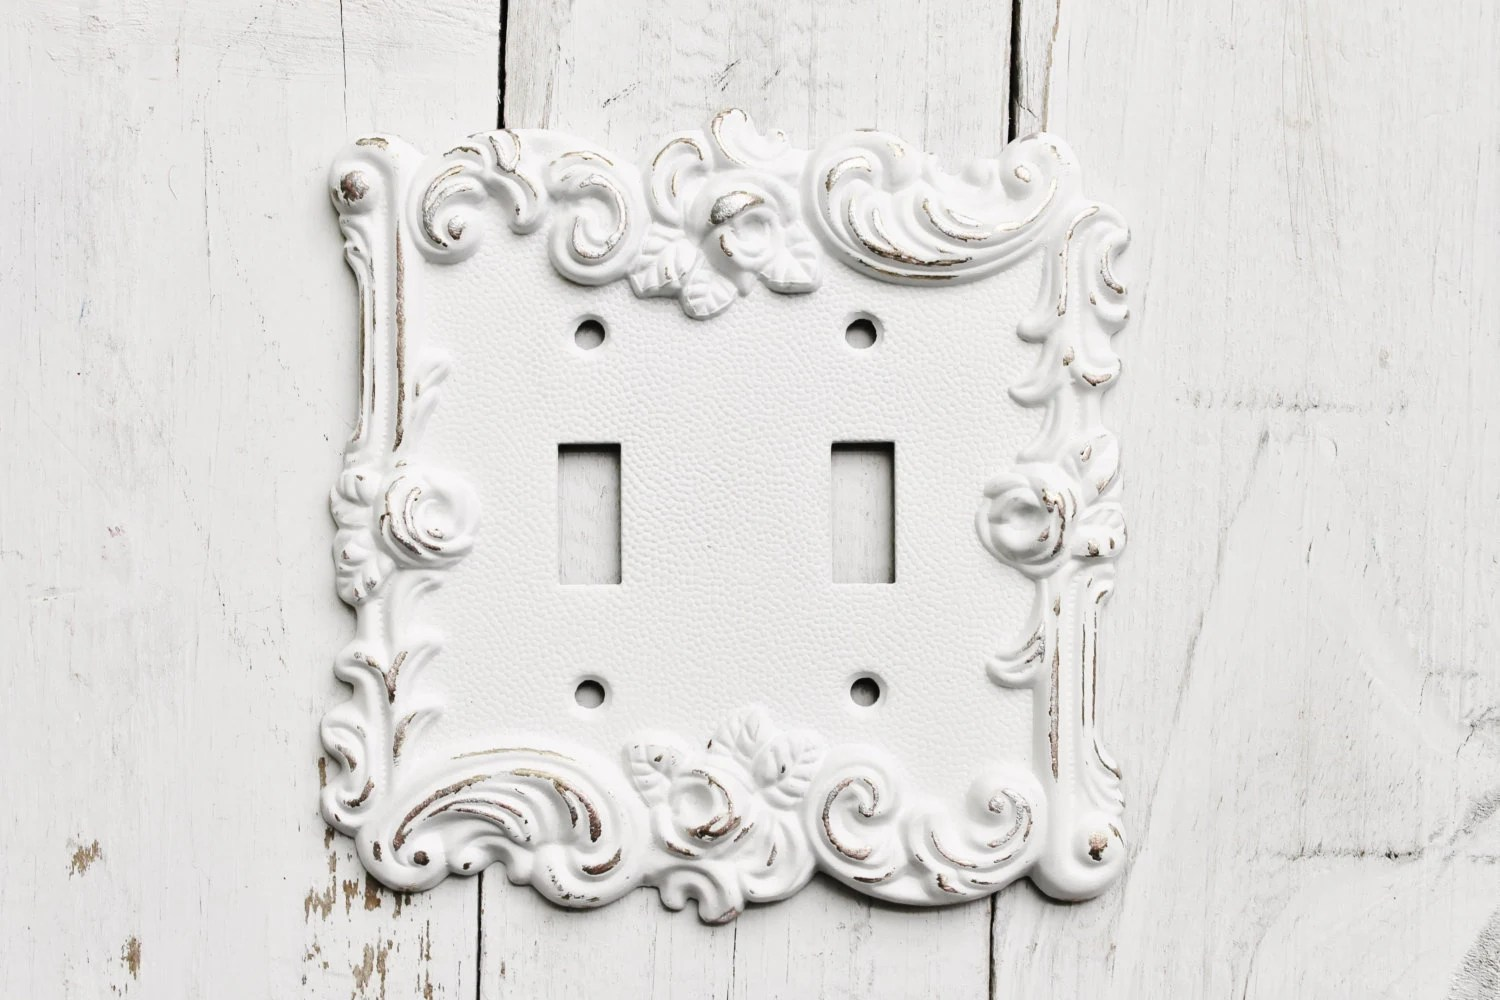 Distressed Metal Wall Decor Double Light Switch Cover